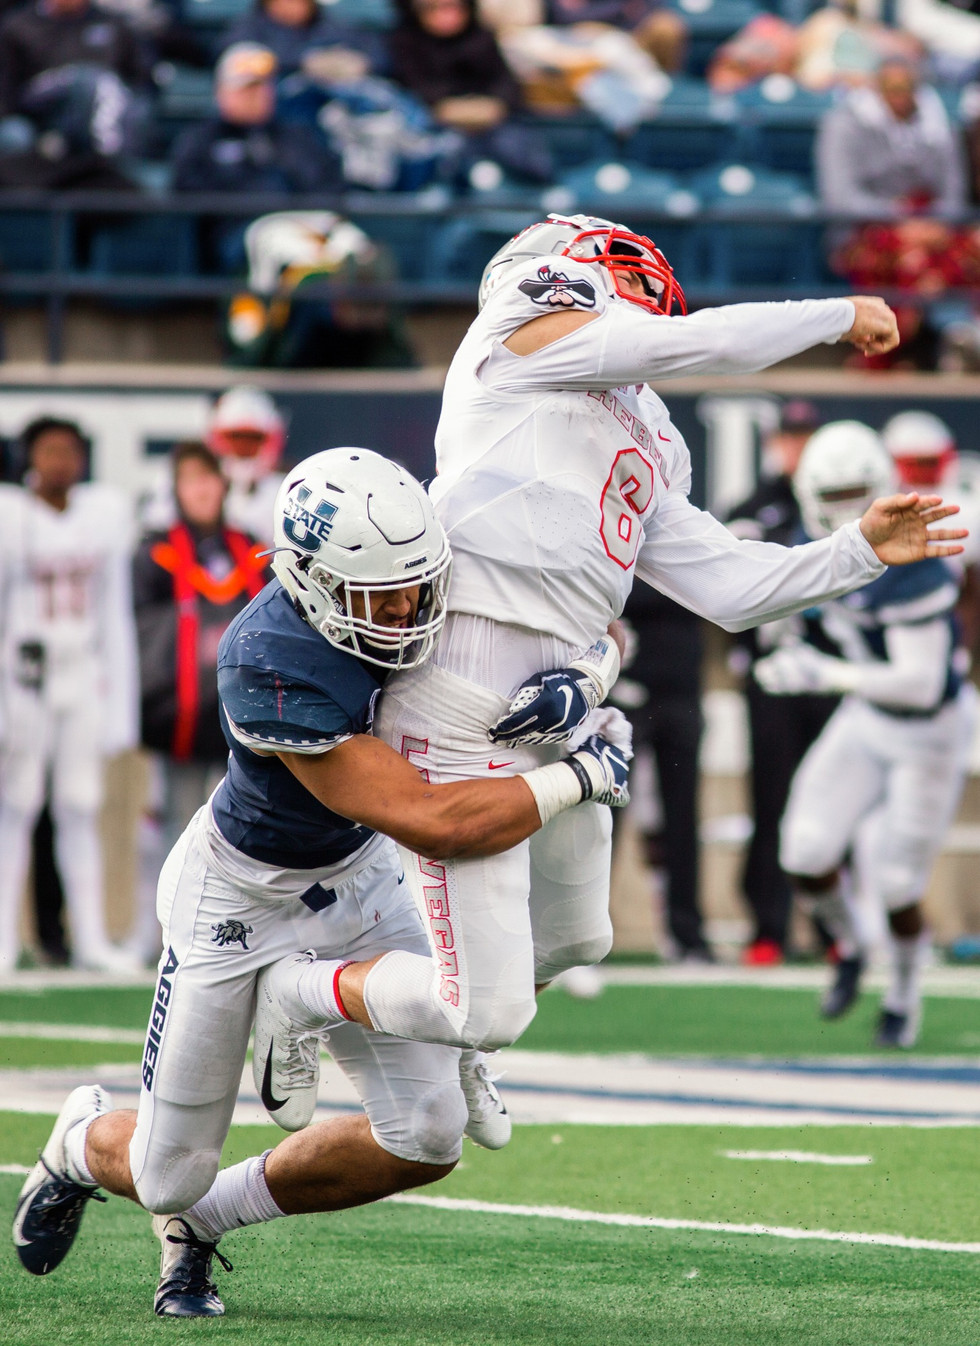 Utah State University linebacker David Woodward tackles University of Las Vegas Nevada quarterback Max Gilliam at the Maverik Stadium on October 13, 2018. Utah State University won the game 59-28 and Woodward recorded 8 solo tackles, a career-high for the sophomore linebacker.